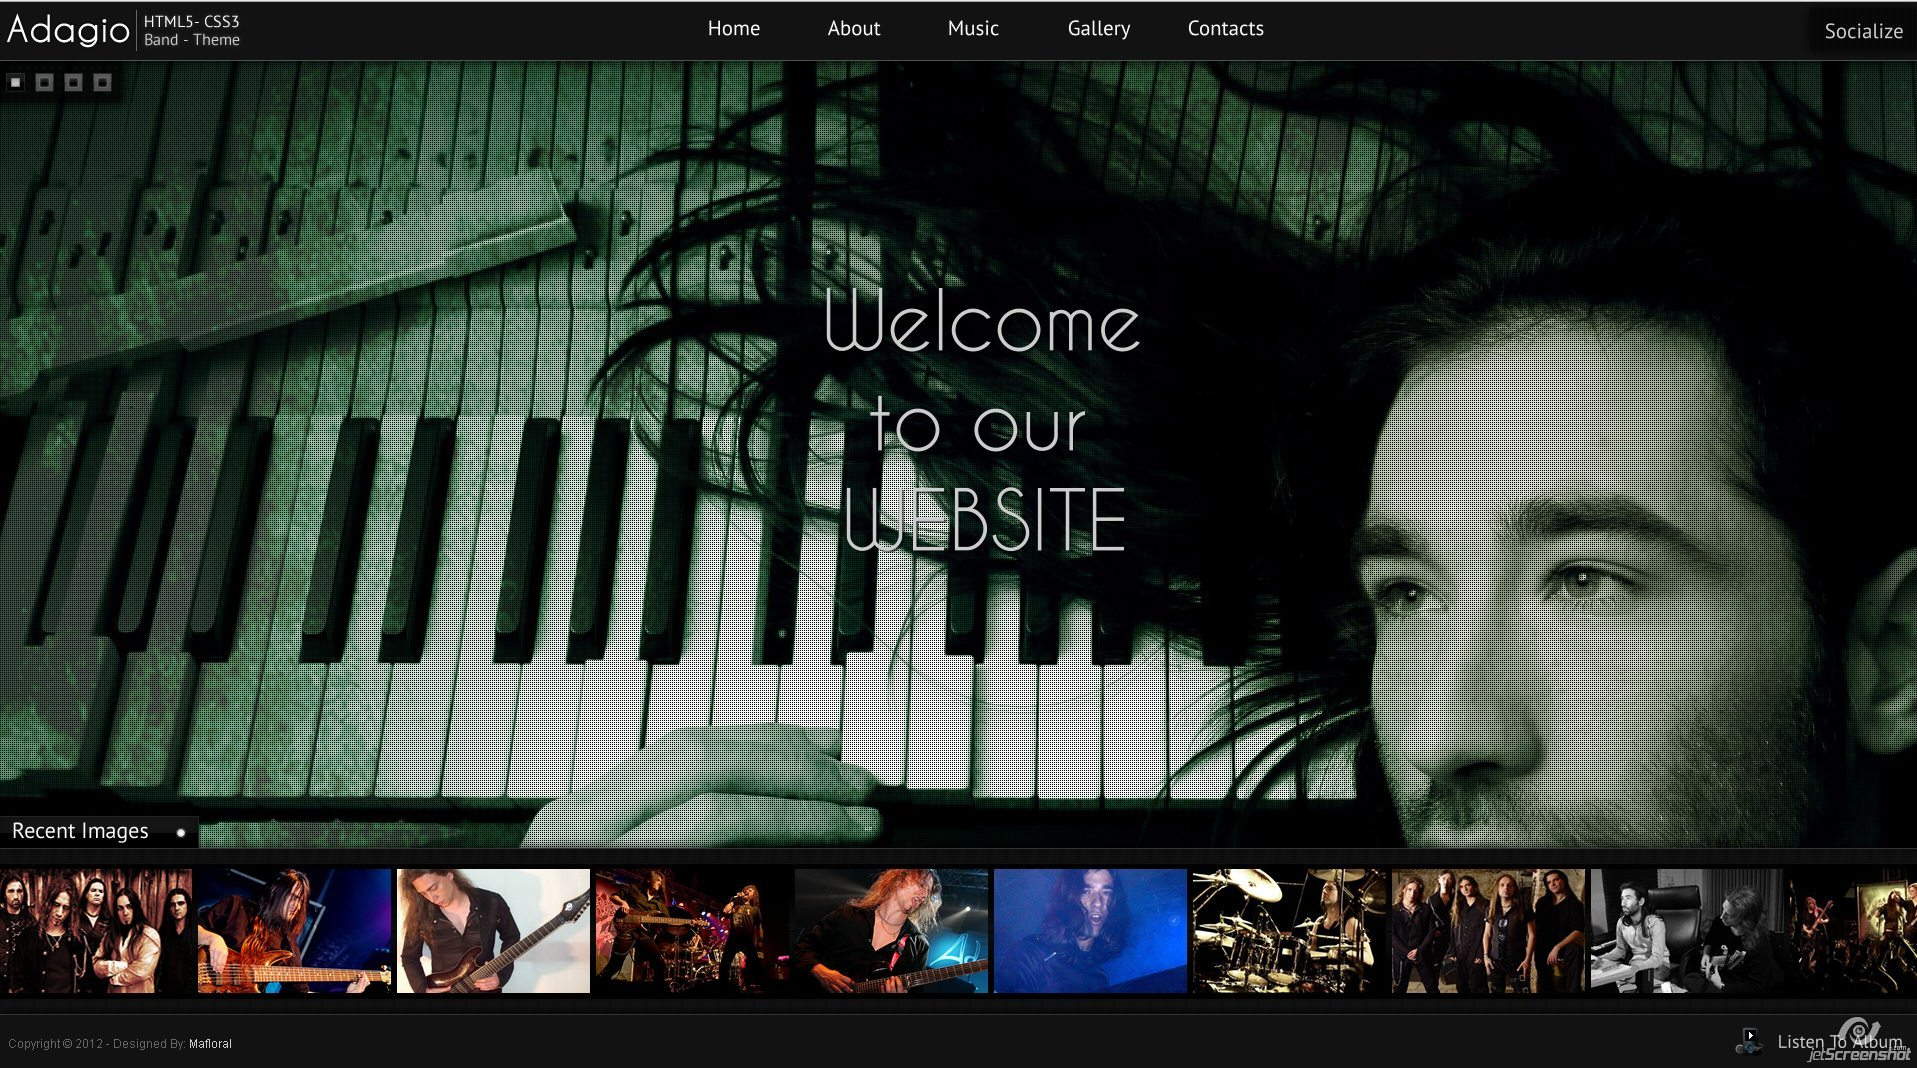 Adagio Musician Template - HTML5 - CSS3 - INdex Page